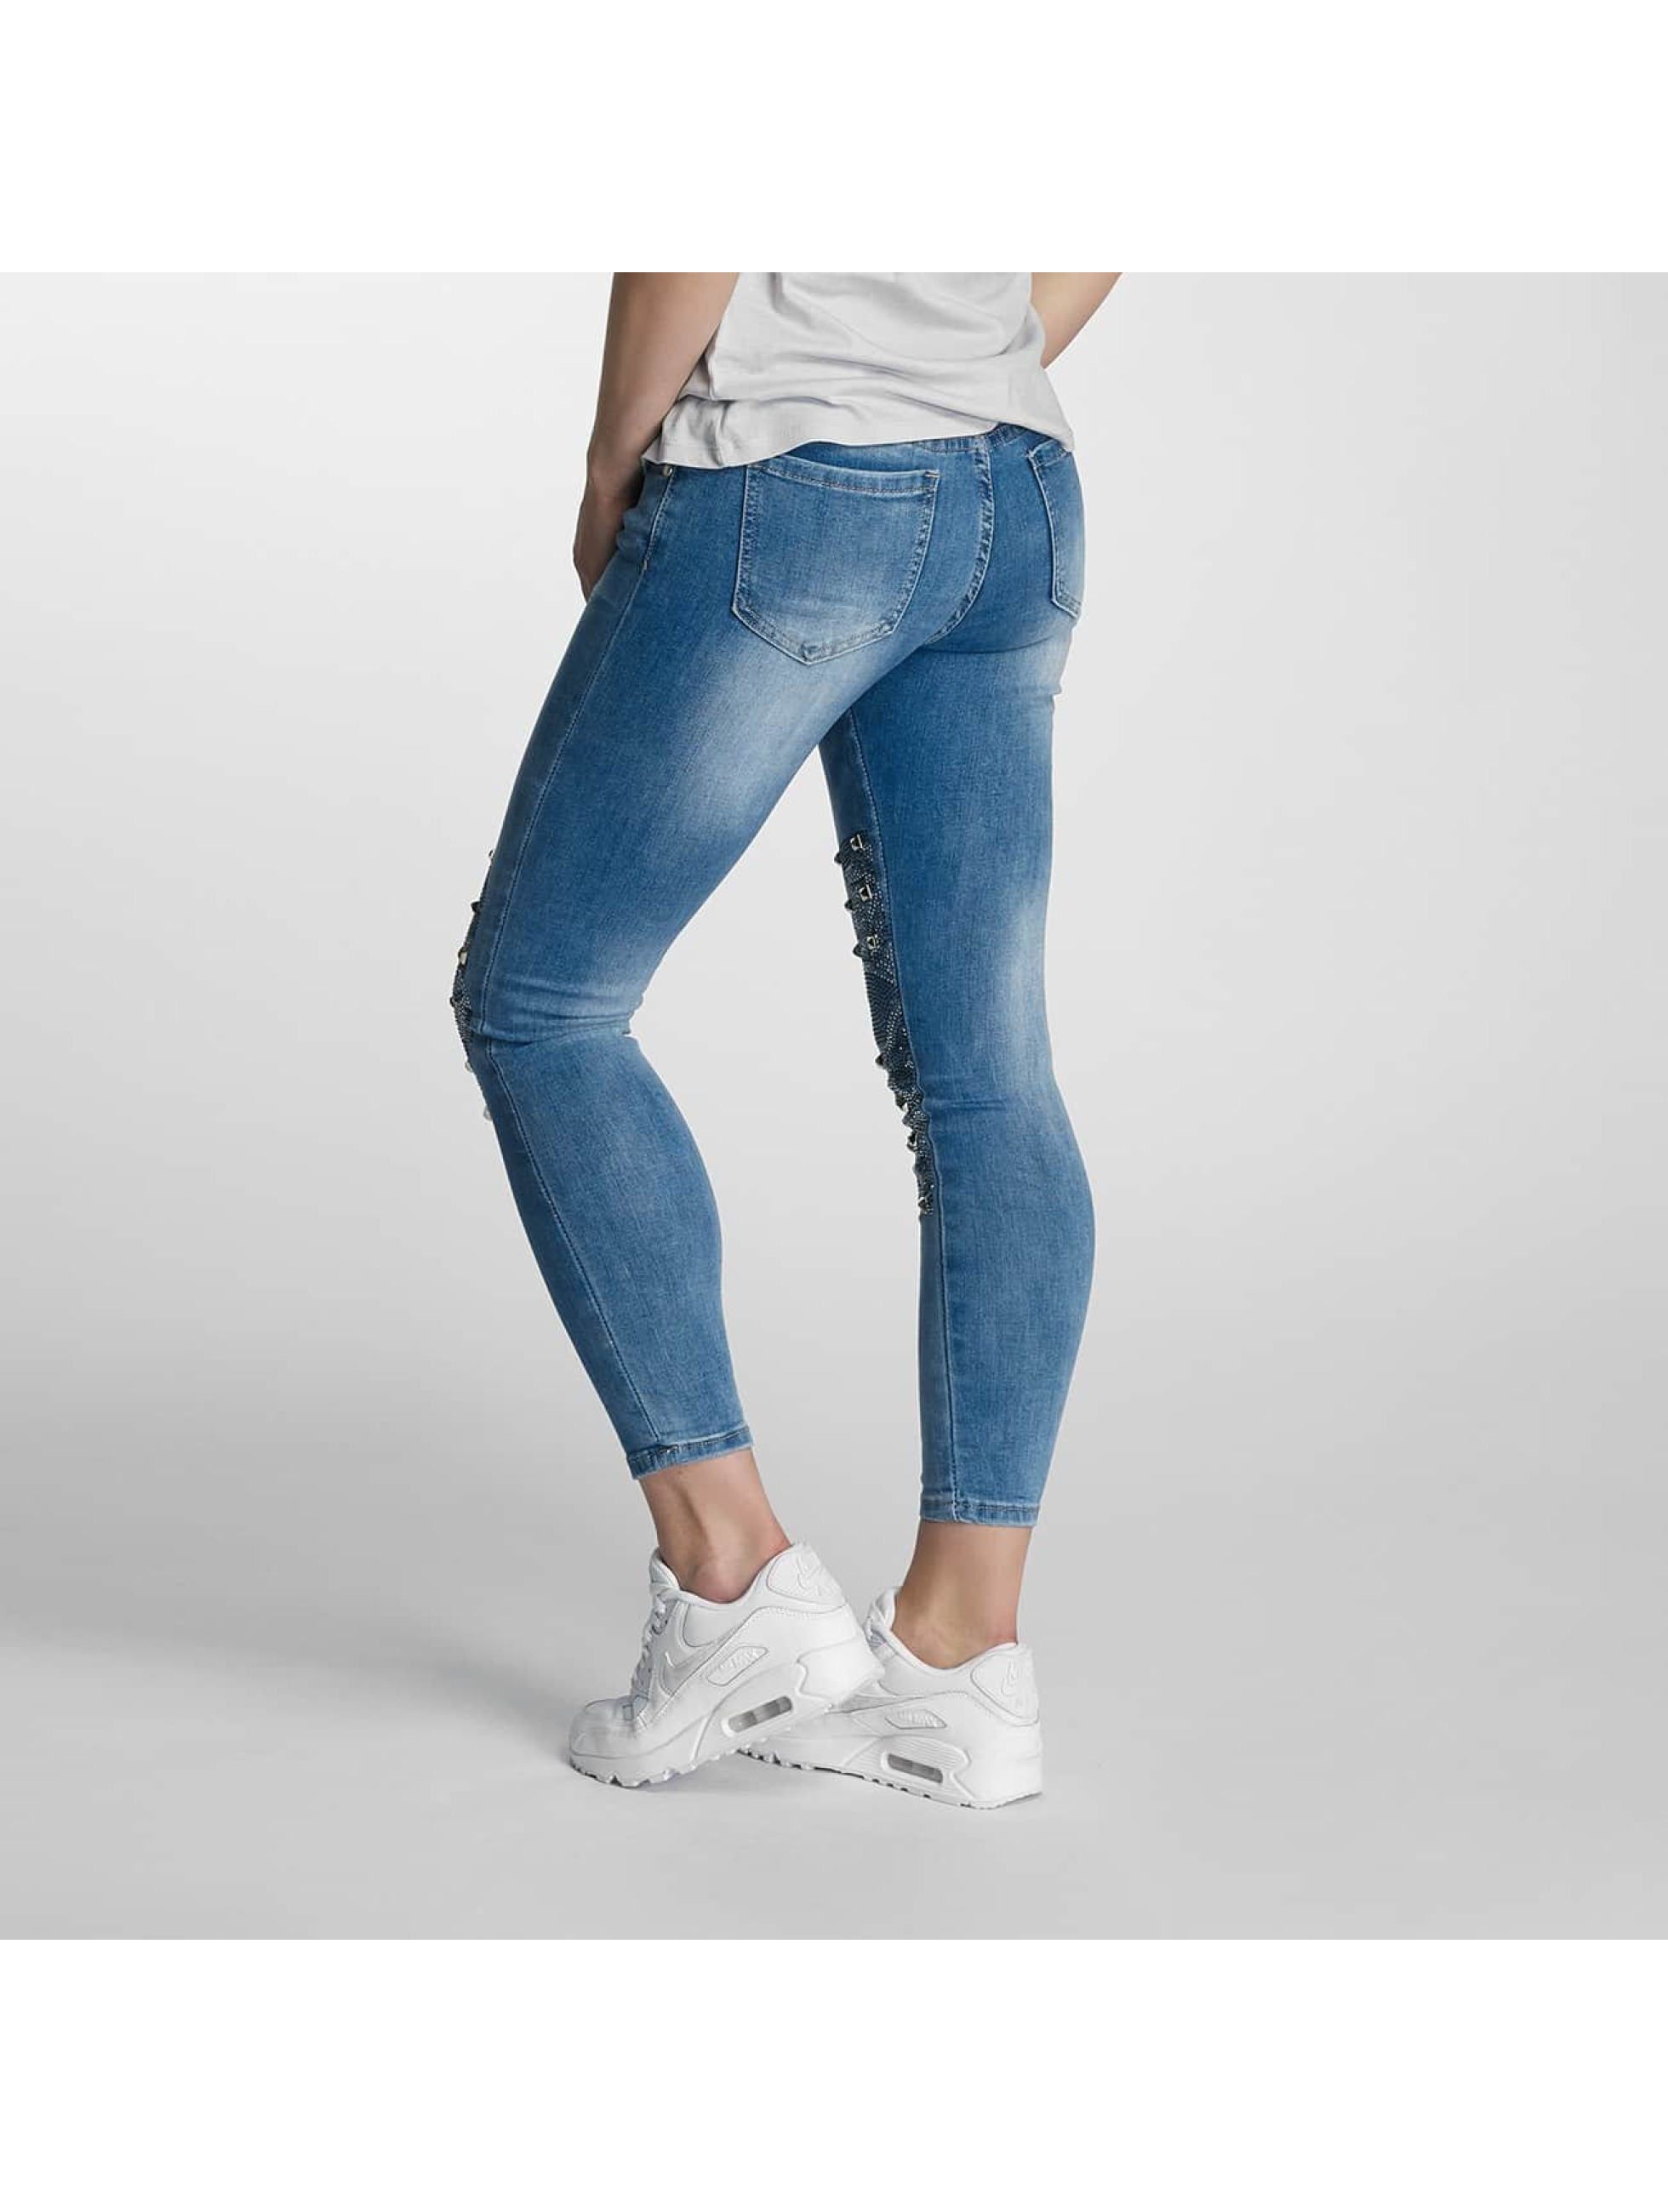 Paris Premium Skinny Jeans Denim blue